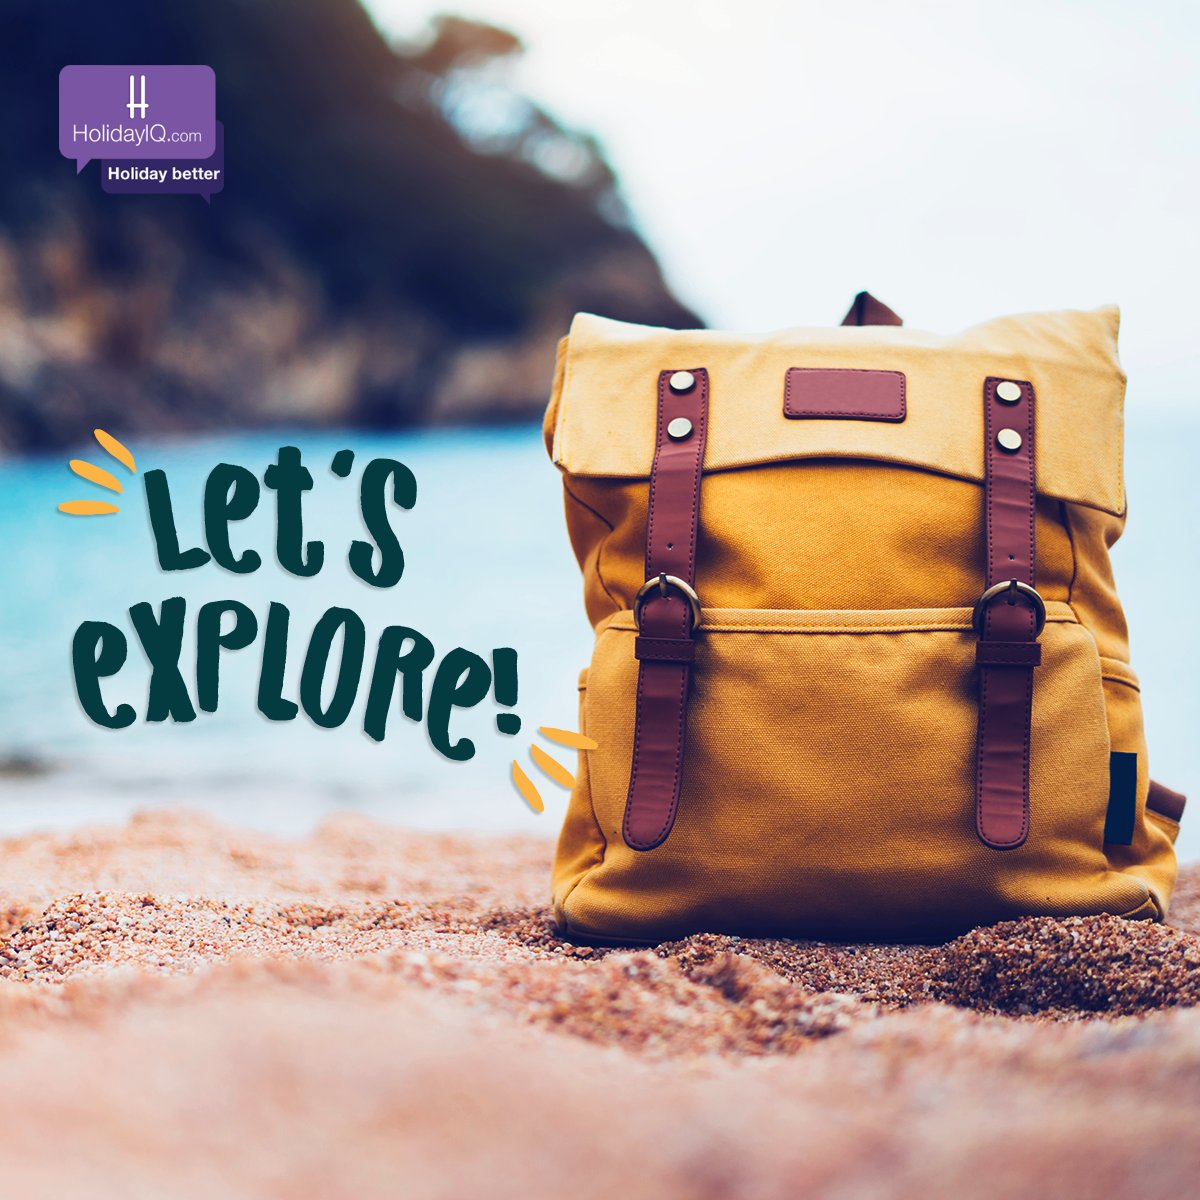 New Year, New Destinations! Made your Bucket List? We have & it is absolutely amazing. Join us as we explore. Watch this space to know whats brewing & do share your feedback.  #holidayiq #holidayiqcommunity #ontrailswithholidayiq #holiday2019 #letsexplore https://t.co/aLB9C1mMyw